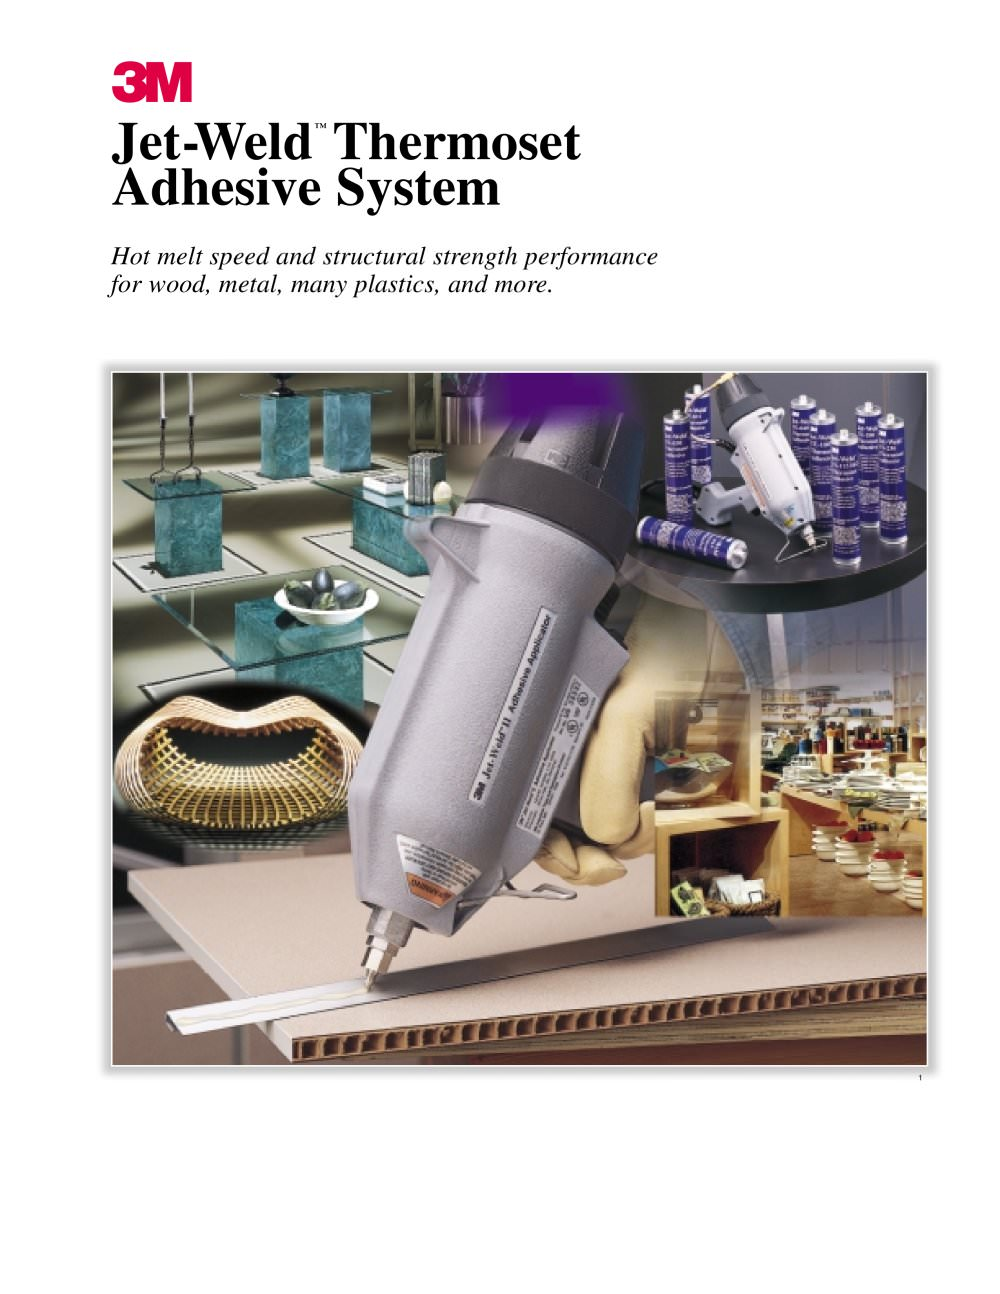 Jet-Weld?Thermoset Adhesive System - 1 / 8 Pages  sc 1 st  Catalogues Directindustry & Jet-Weld?Thermoset Adhesive System - 3M Adhesives - PDF Catalogue ...